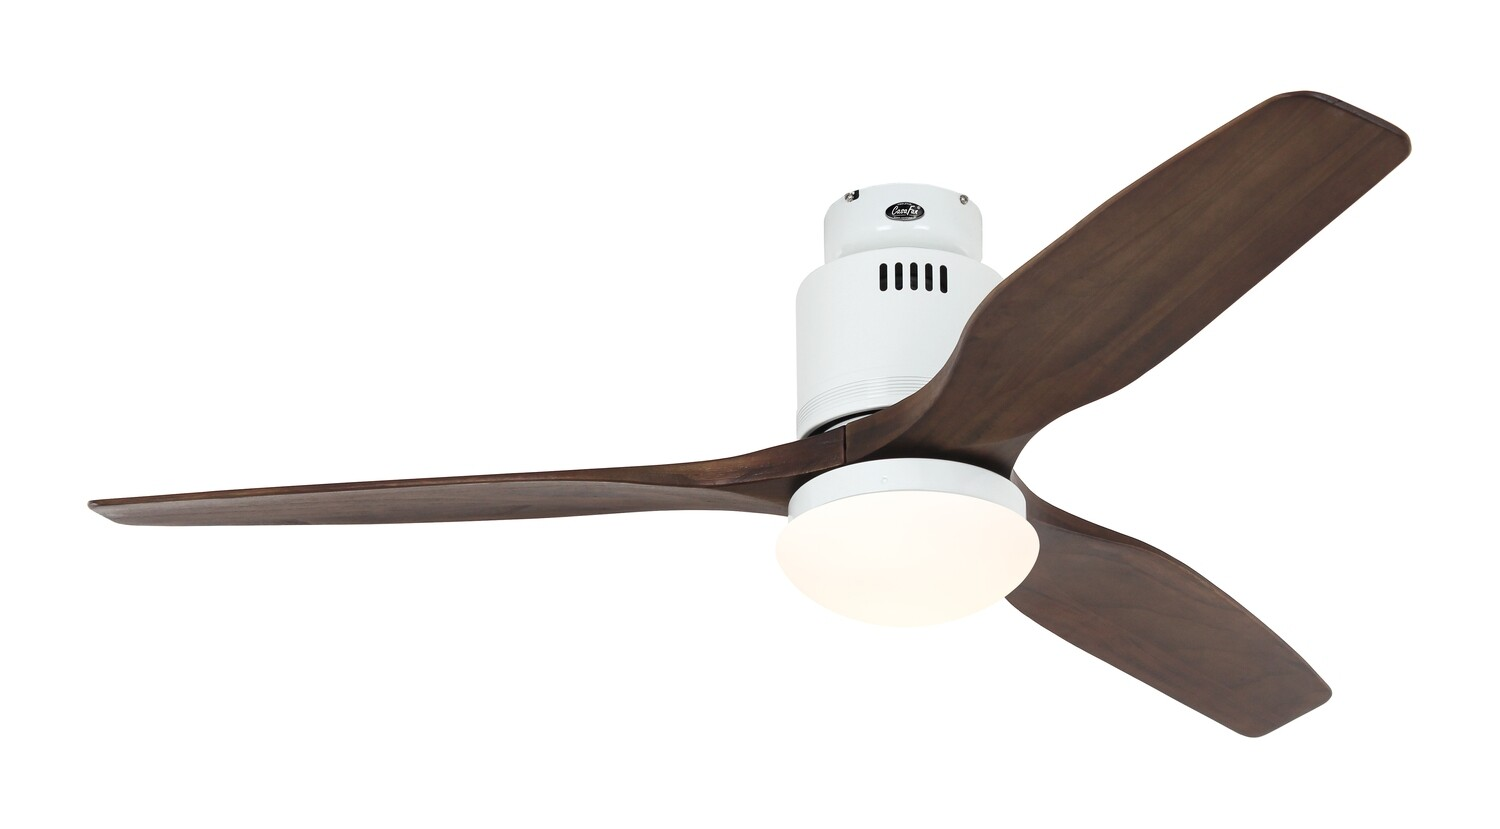 AERODYNAMIX ECO WE energy saving ceiling fan by CASAFAN Ø132  with light kit and remote control included - White /Walnut